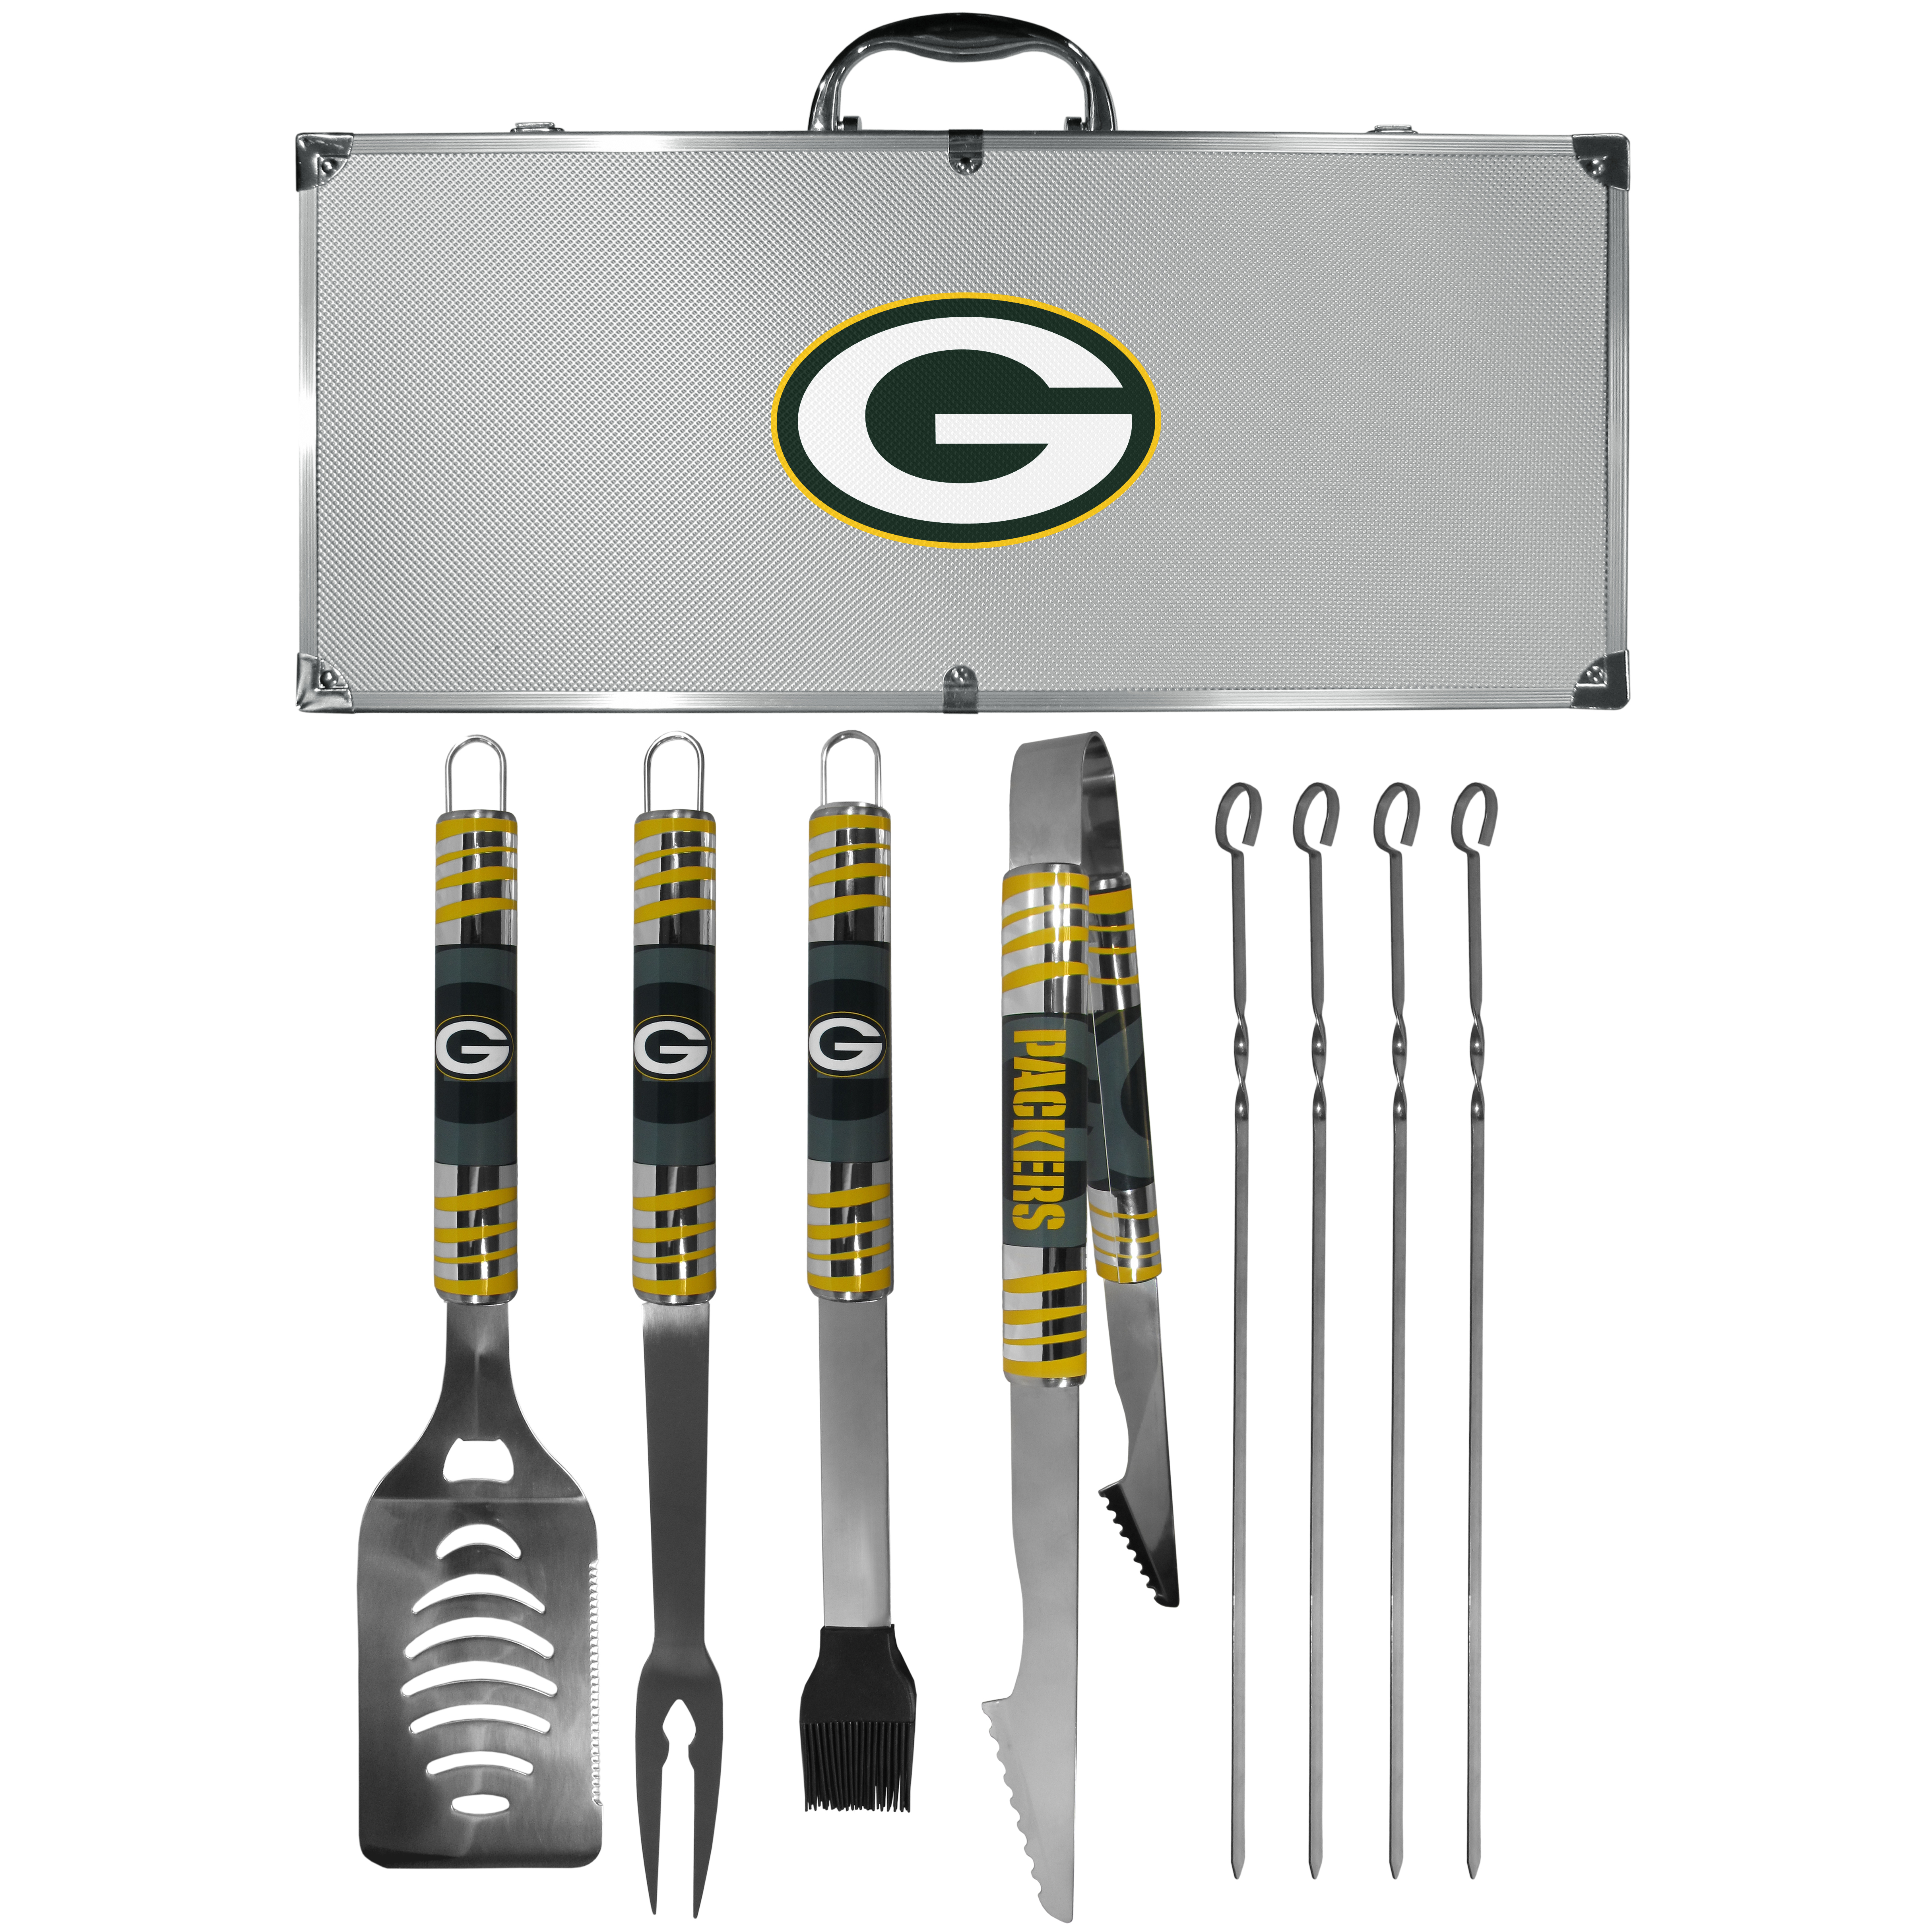 Green Bay Packers 8 pc Tailgater BBQ Set - This is the ultimate Green Bay Packers tailgate accessory! The high quality, 420 grade stainless steel tools are durable and well-made enough to make even the pickiest grill master smile. This complete grill accessory kit includes; 4 skewers, spatula with bottle opener and serrated knife edge, basting brush, tongs and a fork. The 18 inch metal carrying case is perfect for great outdoor use making grilling an ease while camping, tailgating or while having a game day party on your patio. The tools are 17 inches long and feature vivid team graphics. The metal case features a large team emblem with exceptional detail. This high-end men's gift is sure to be a hit as a present on Father's Day or Christmas.